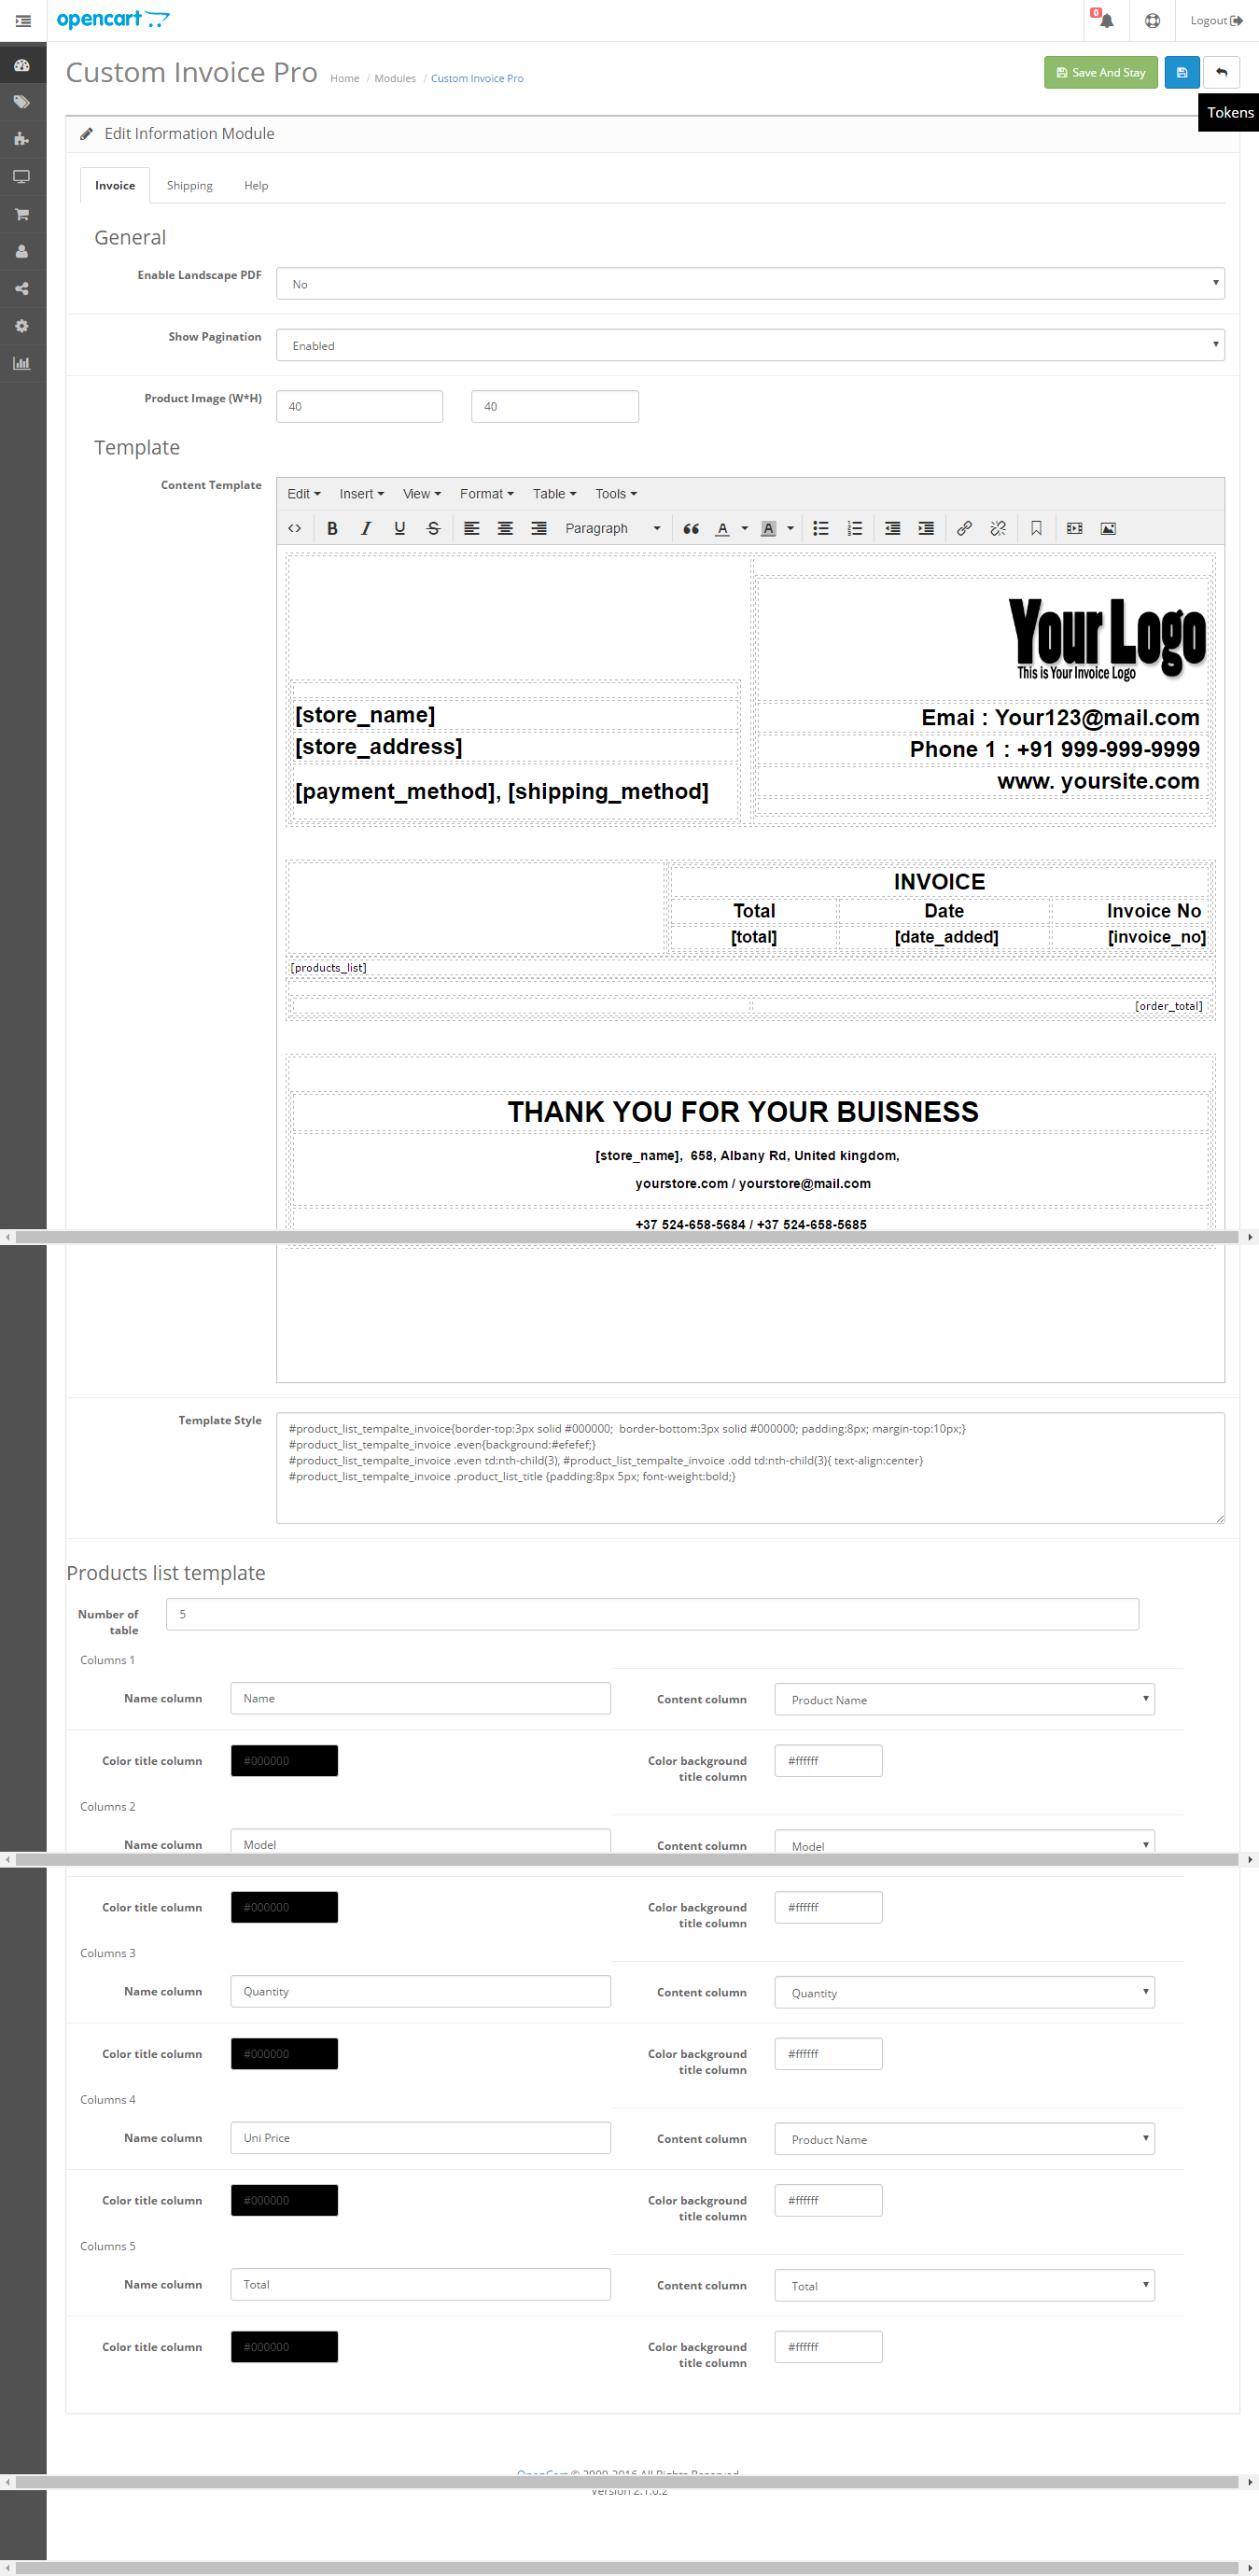 Custom Invoice PDF By Scf CodeCanyon - Free pdf invoice template game online store